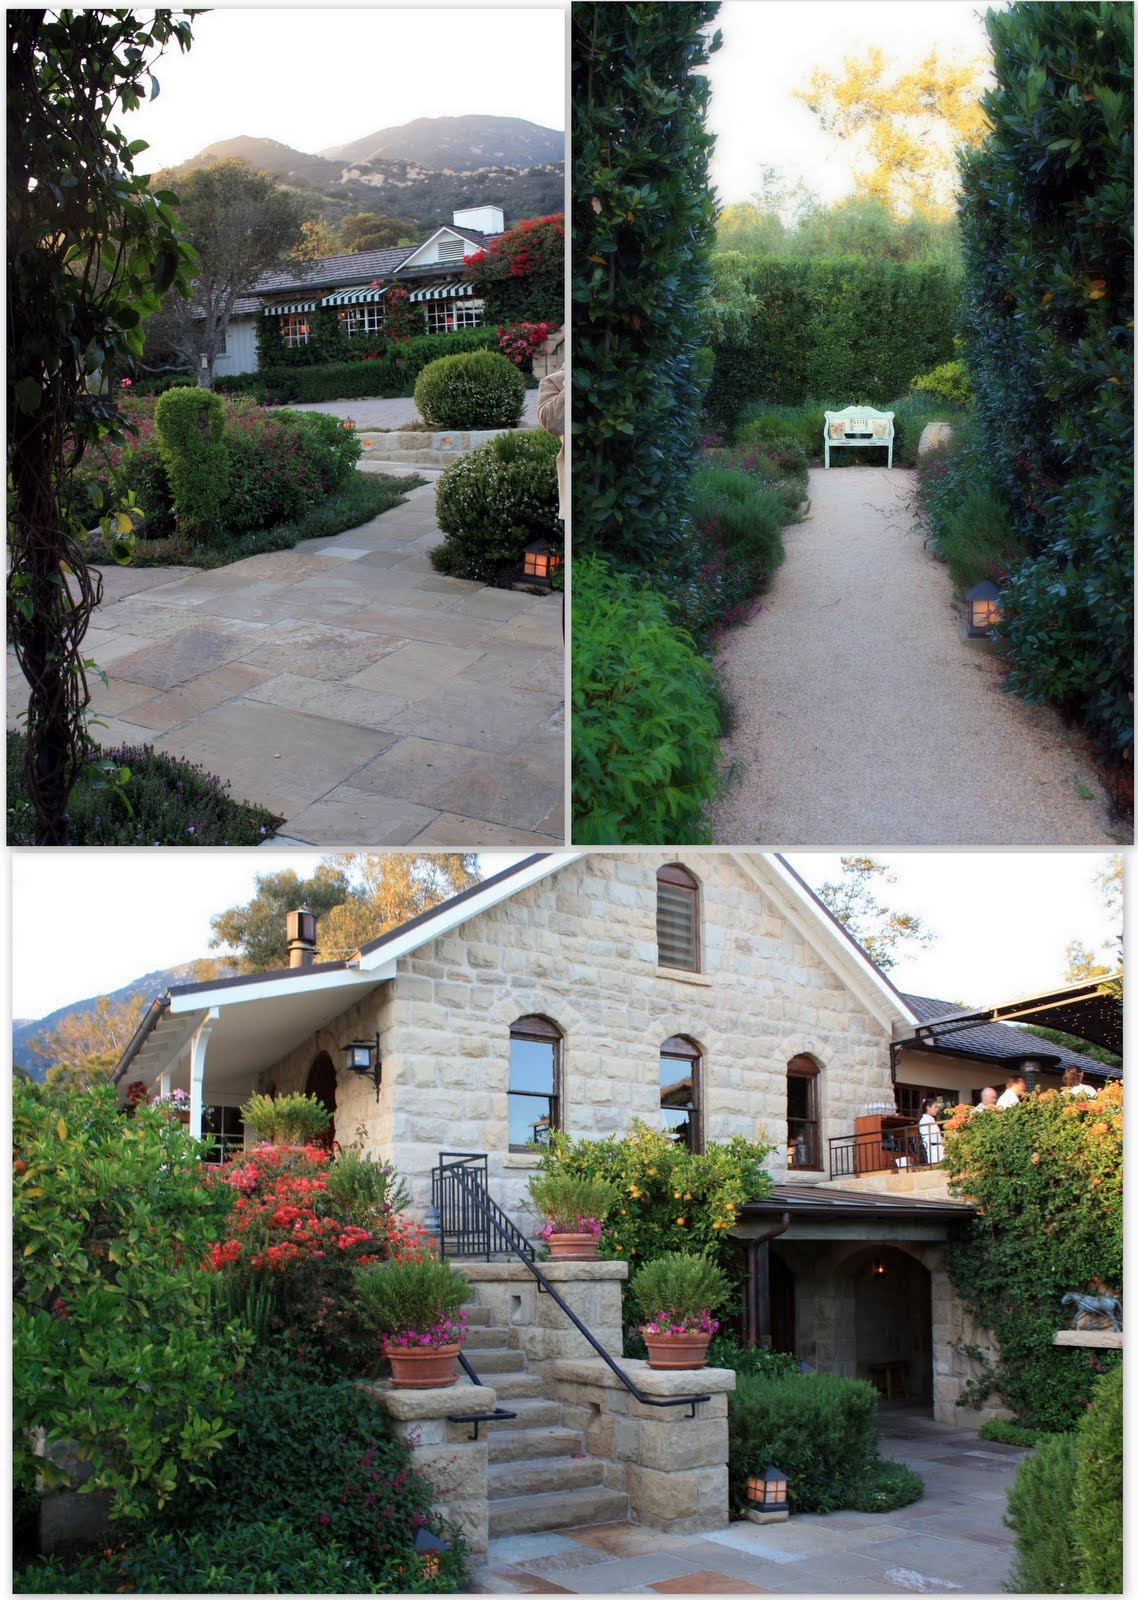 The beautiful Stonehouse restaurant at San Ysidro Ranch in Montecito, California.